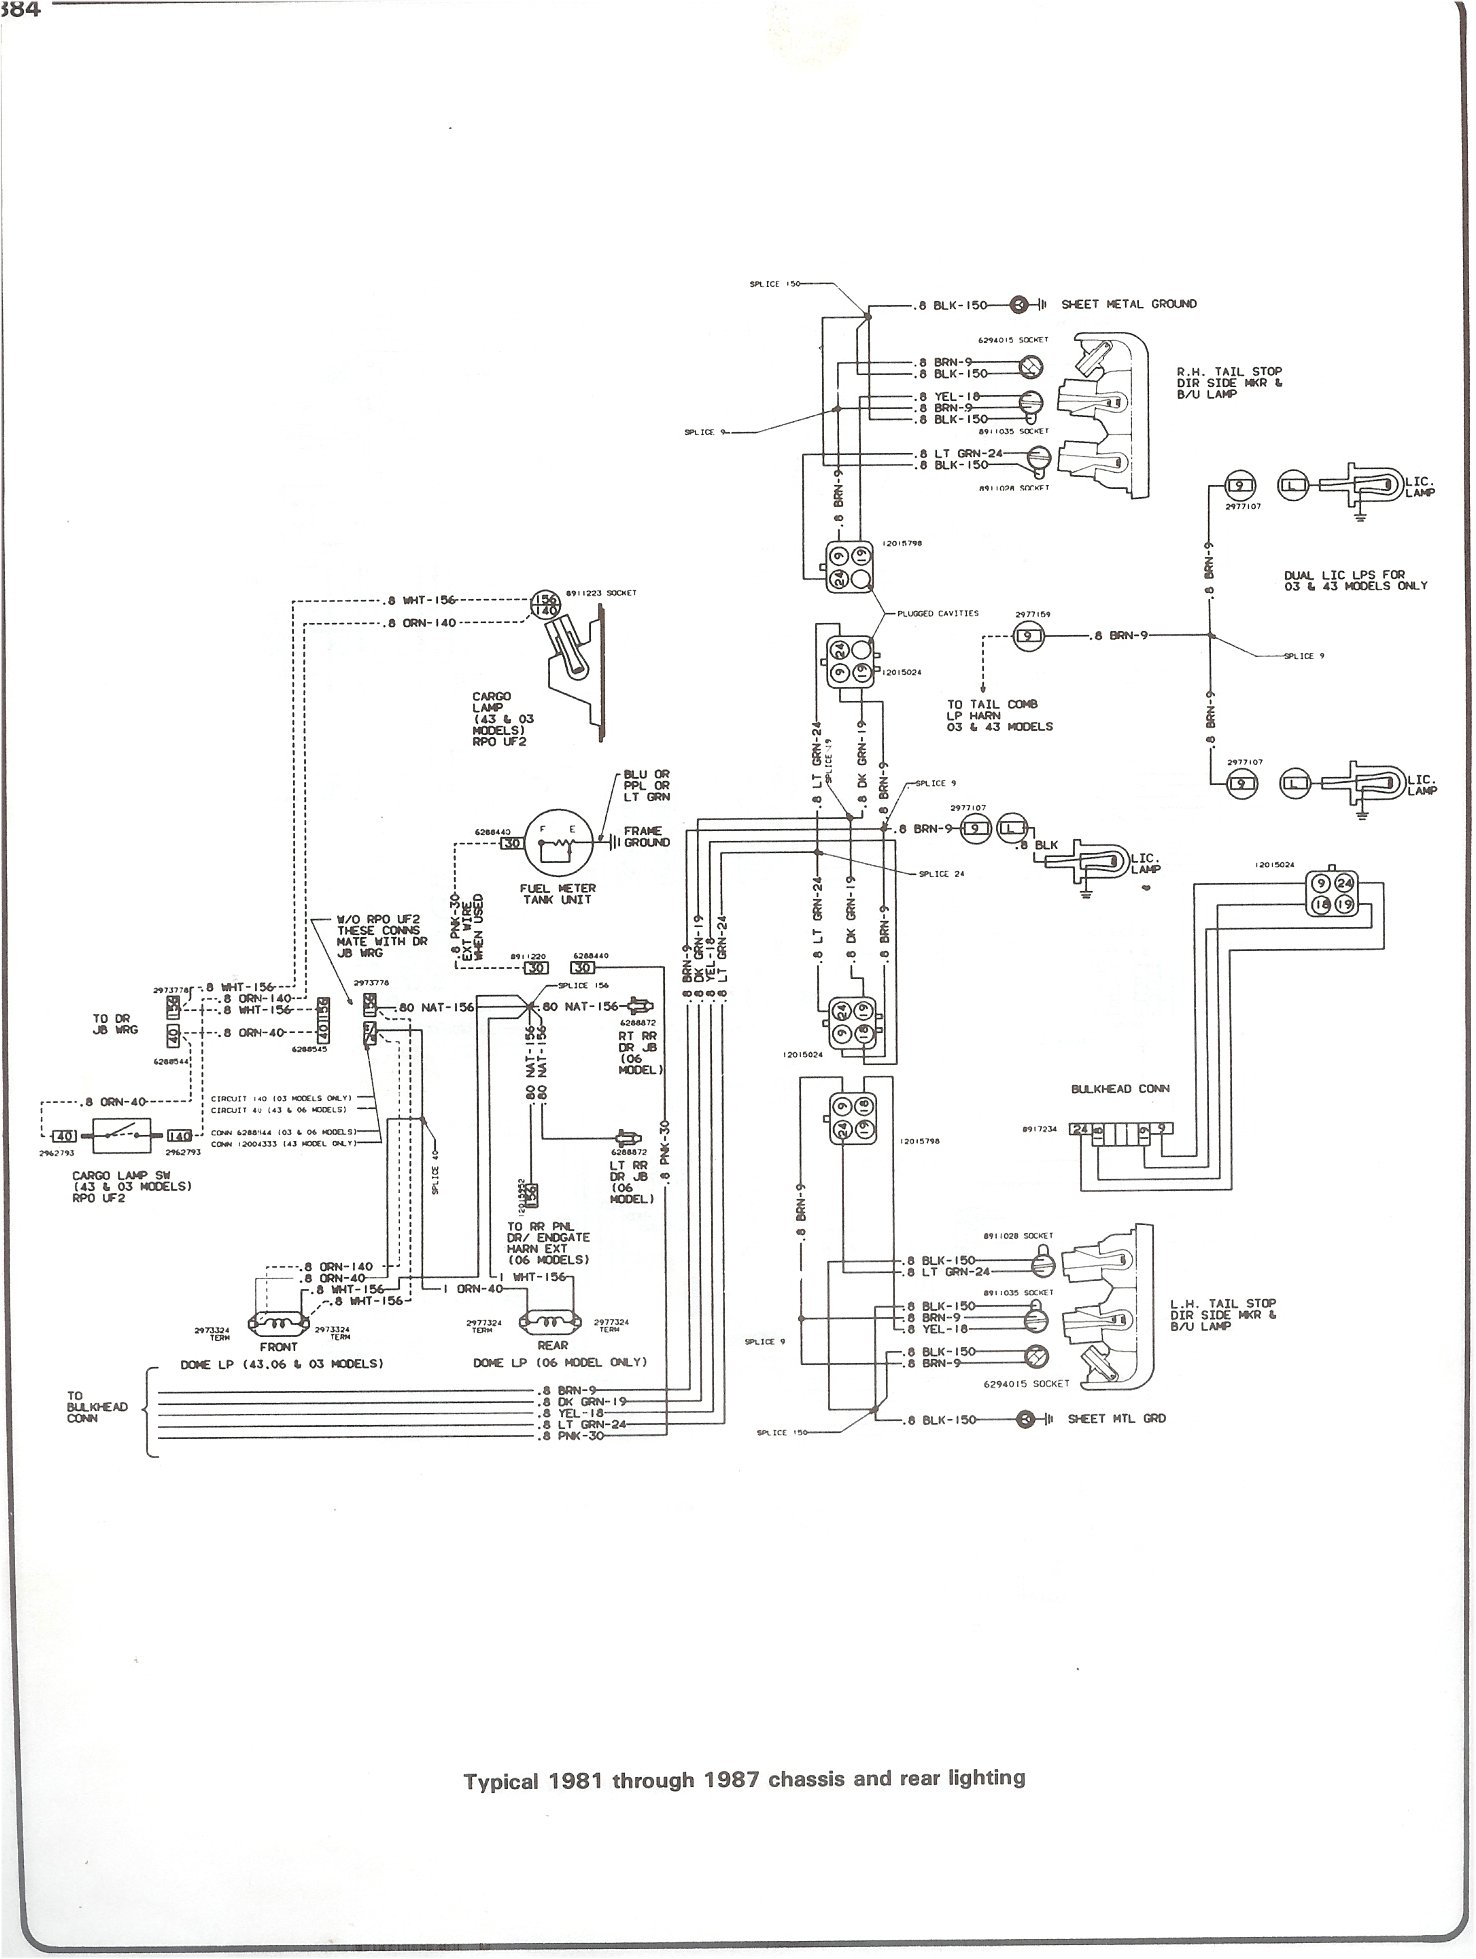 81 87_chass_rr_light brake light switch wiring diagram? blazer forum chevy blazer 1975 chevy k10 wiring diagram at virtualis.co